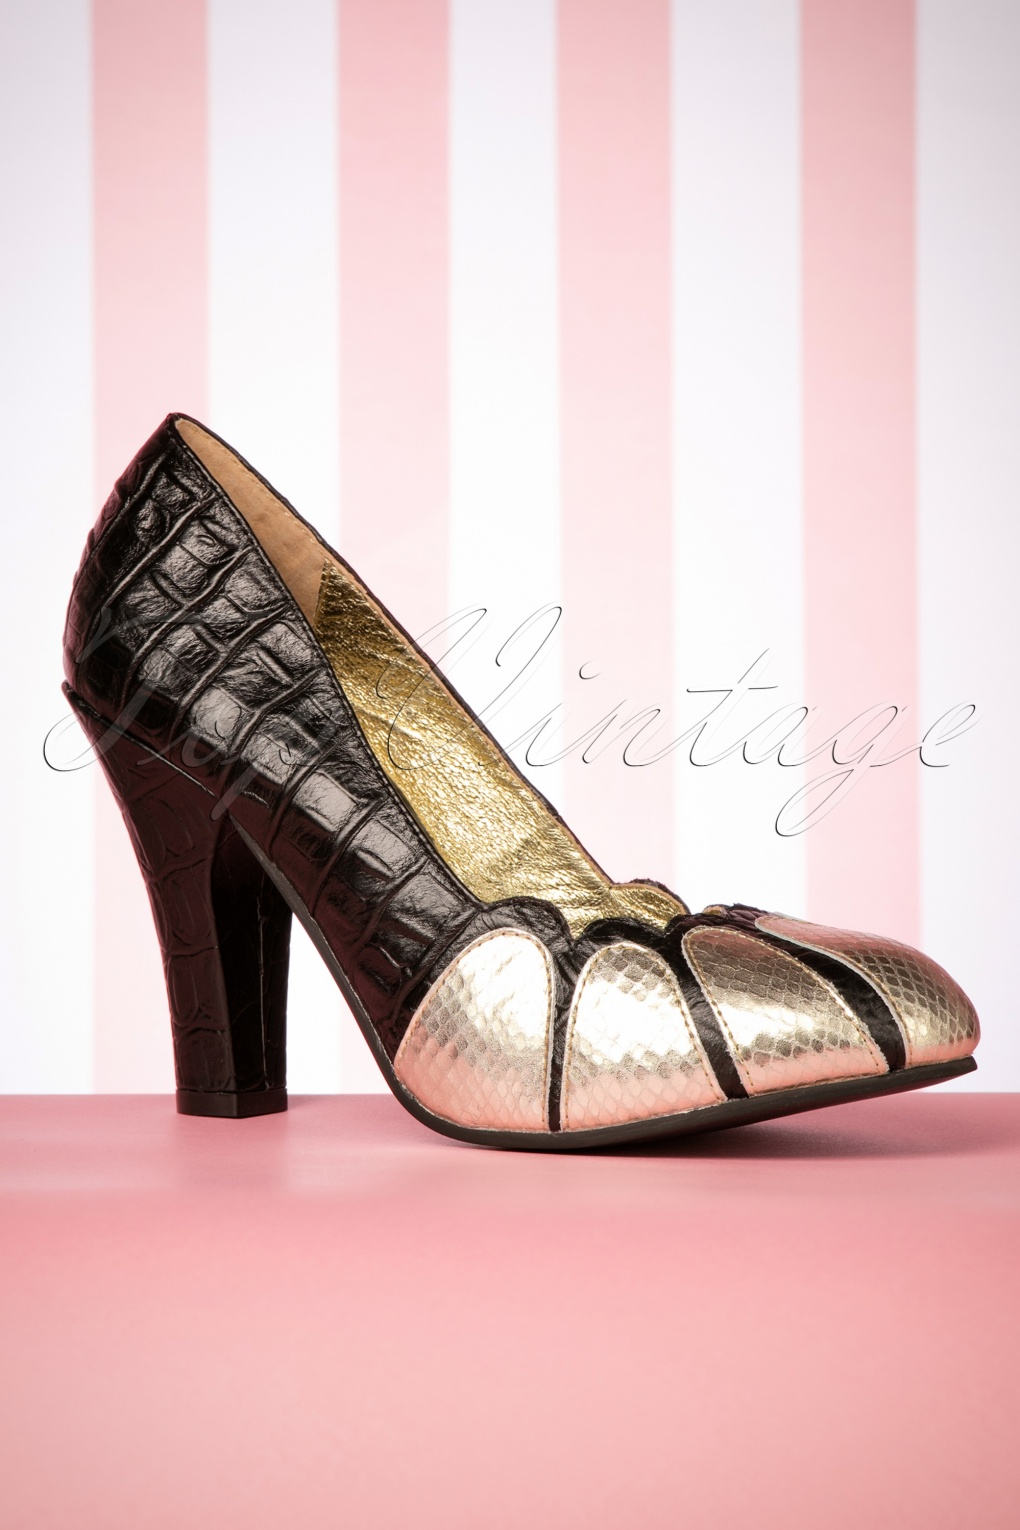 60s Shoes, Boots | 70s Shoes, Platforms, Boots 70s June Golden Years Leather Pumps in Black £144.55 AT vintagedancer.com